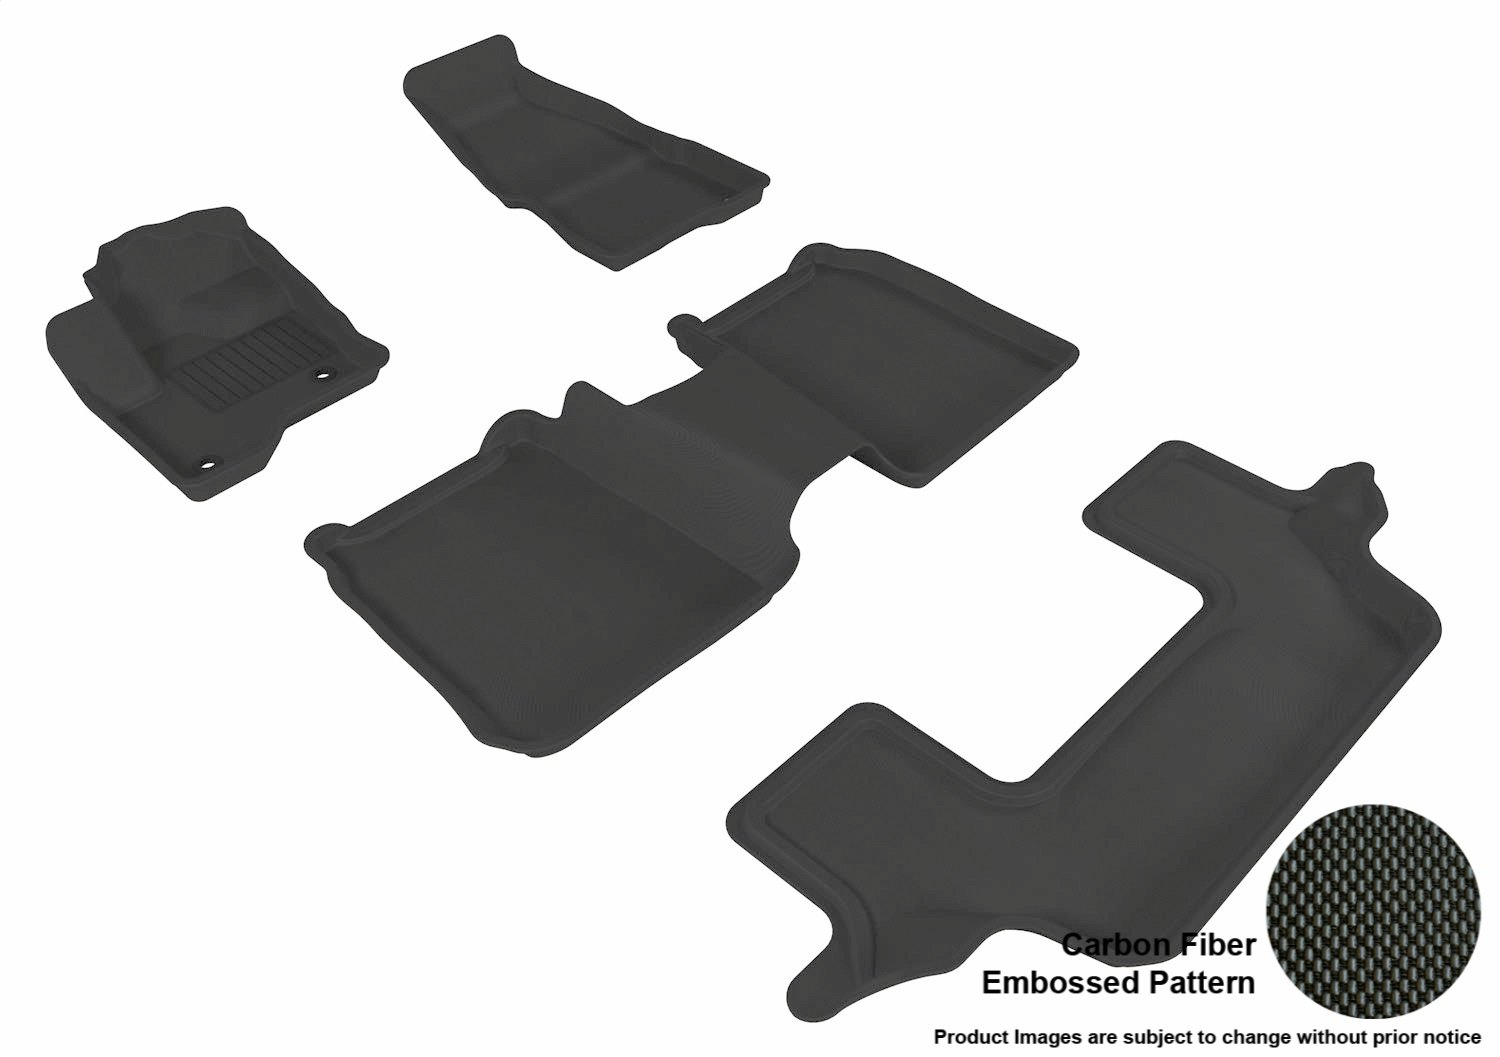 Tan 3D MAXpider Front Row Custom Fit All-Weather Floor Mat for Select Ford Flex Models Kagu Rubber L1FR02111502